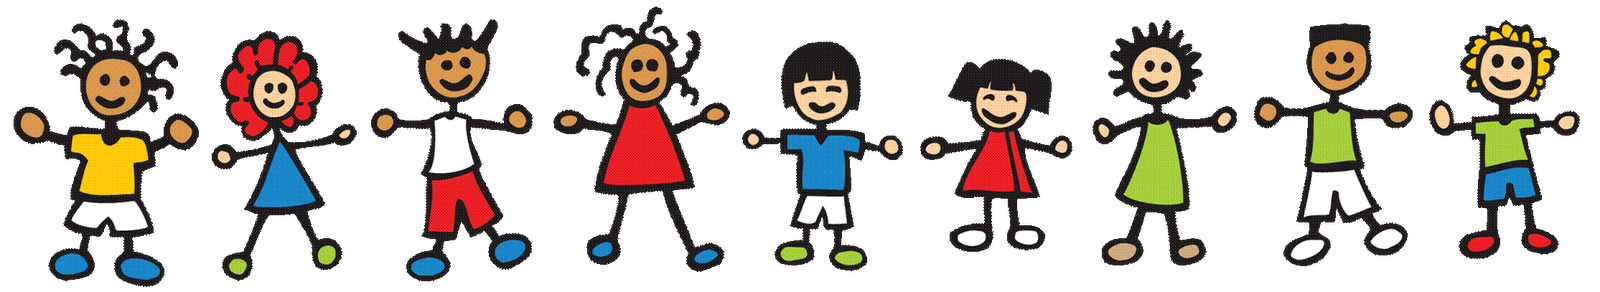 Friendship free clip art friends clipart 3.